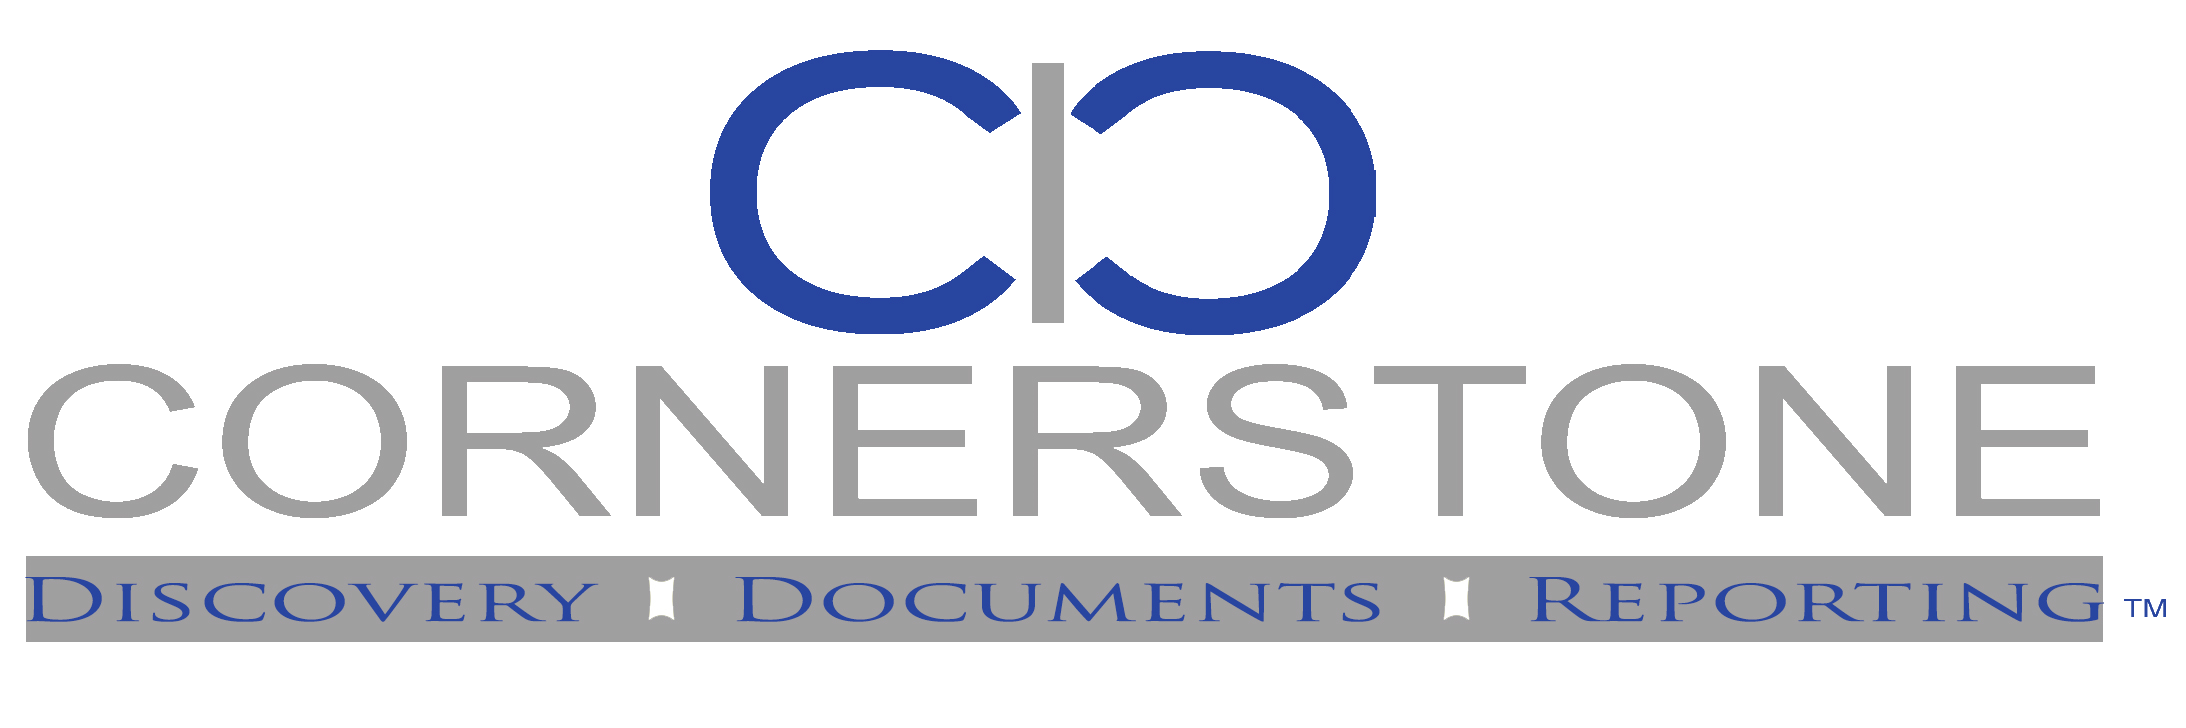 Cornerstone LogoTransparent.png